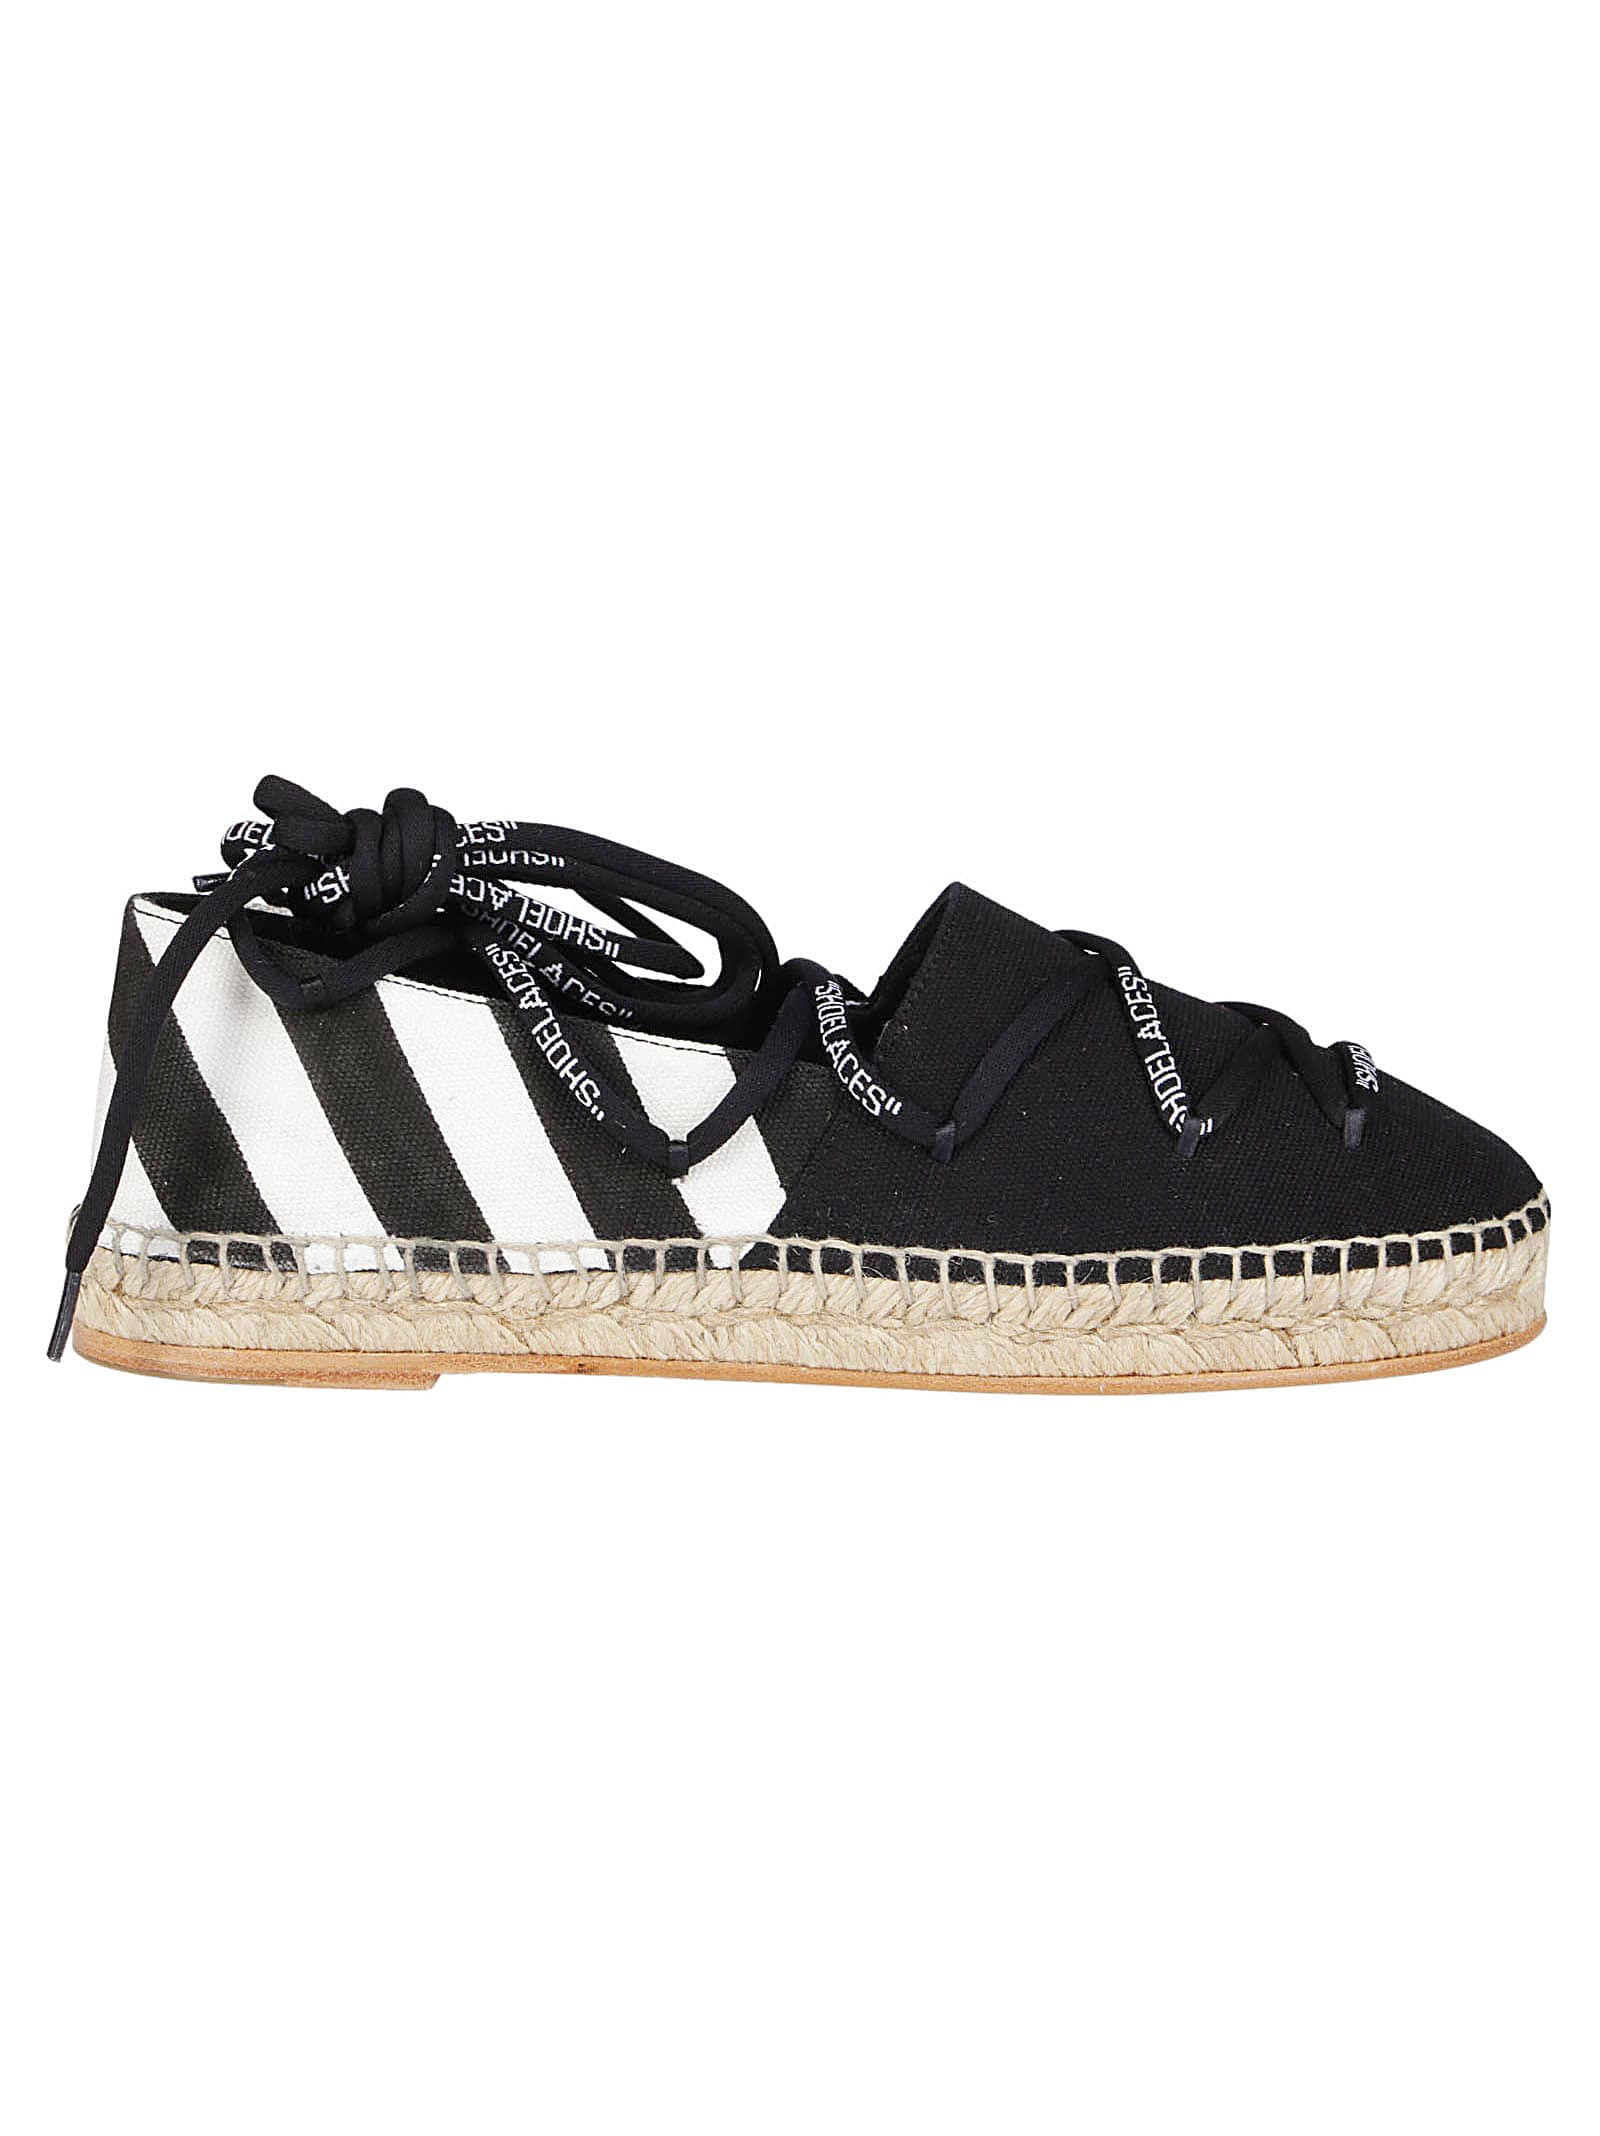 Off-White Lace Up Espadrilles